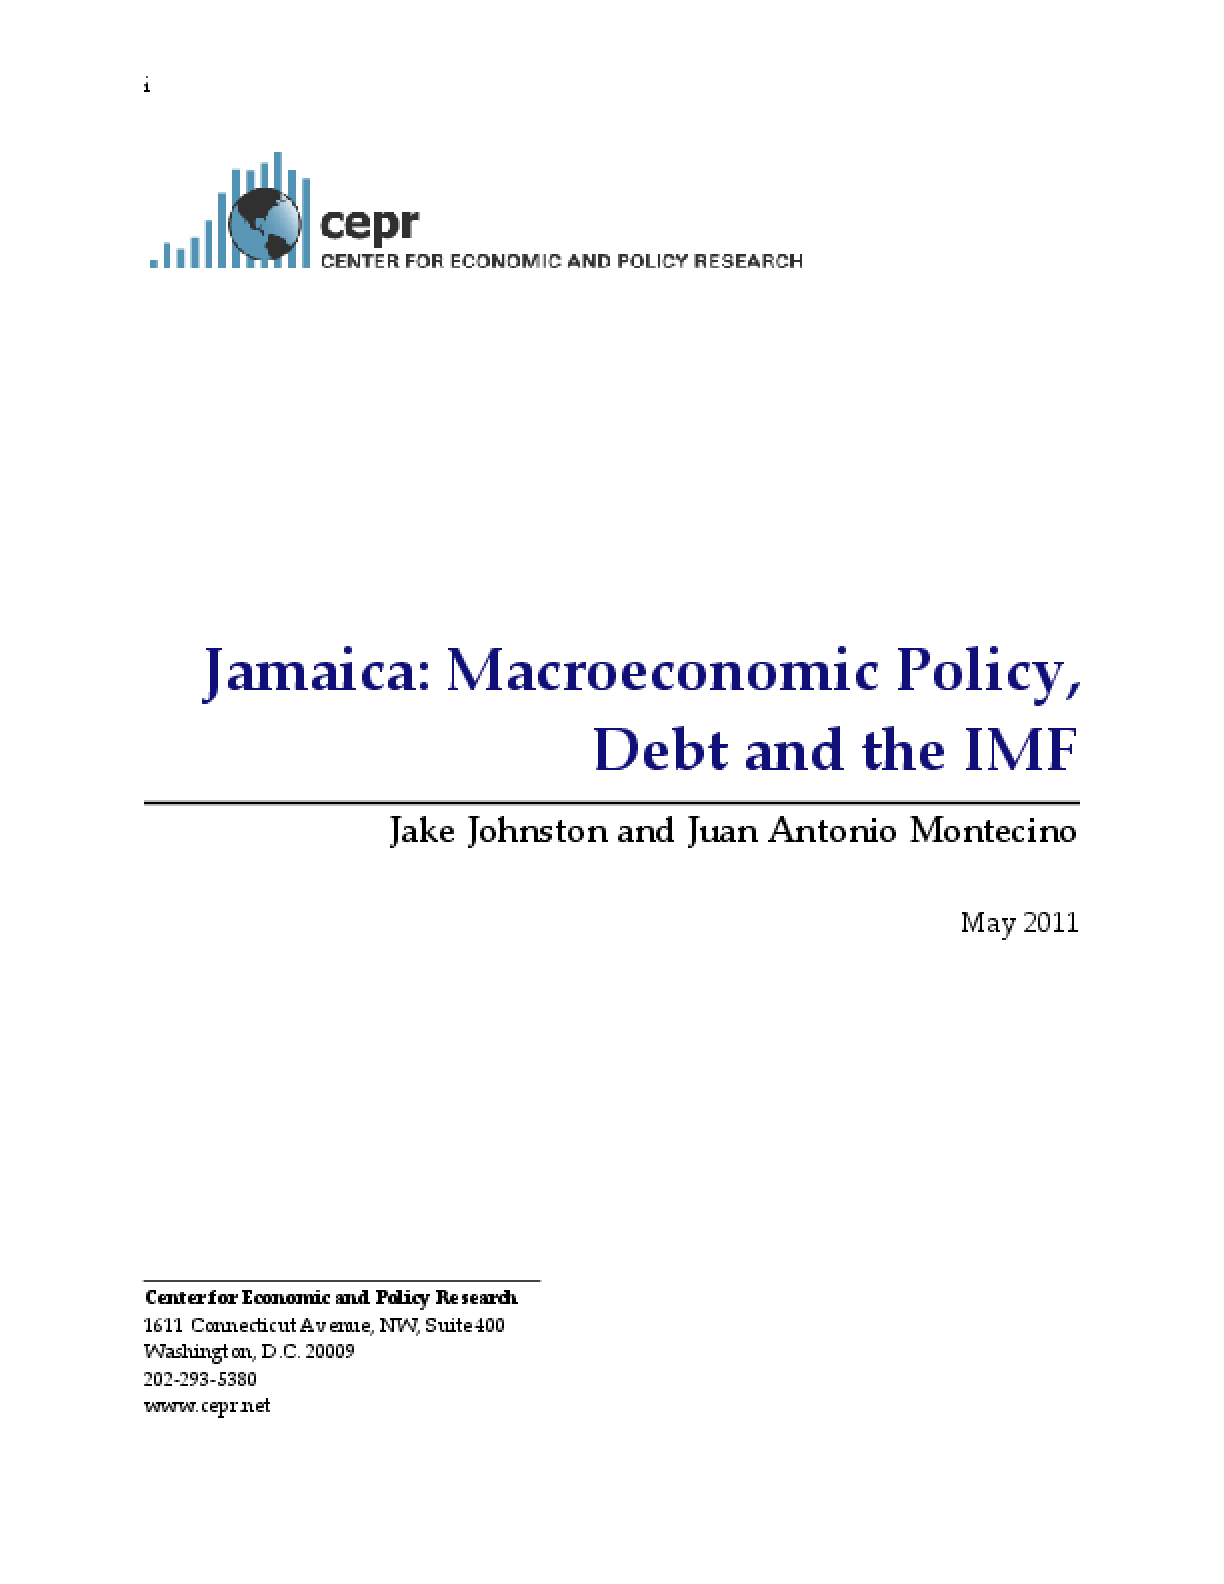 Jamaica: Macroeconomic Policy, Debt and the IMF